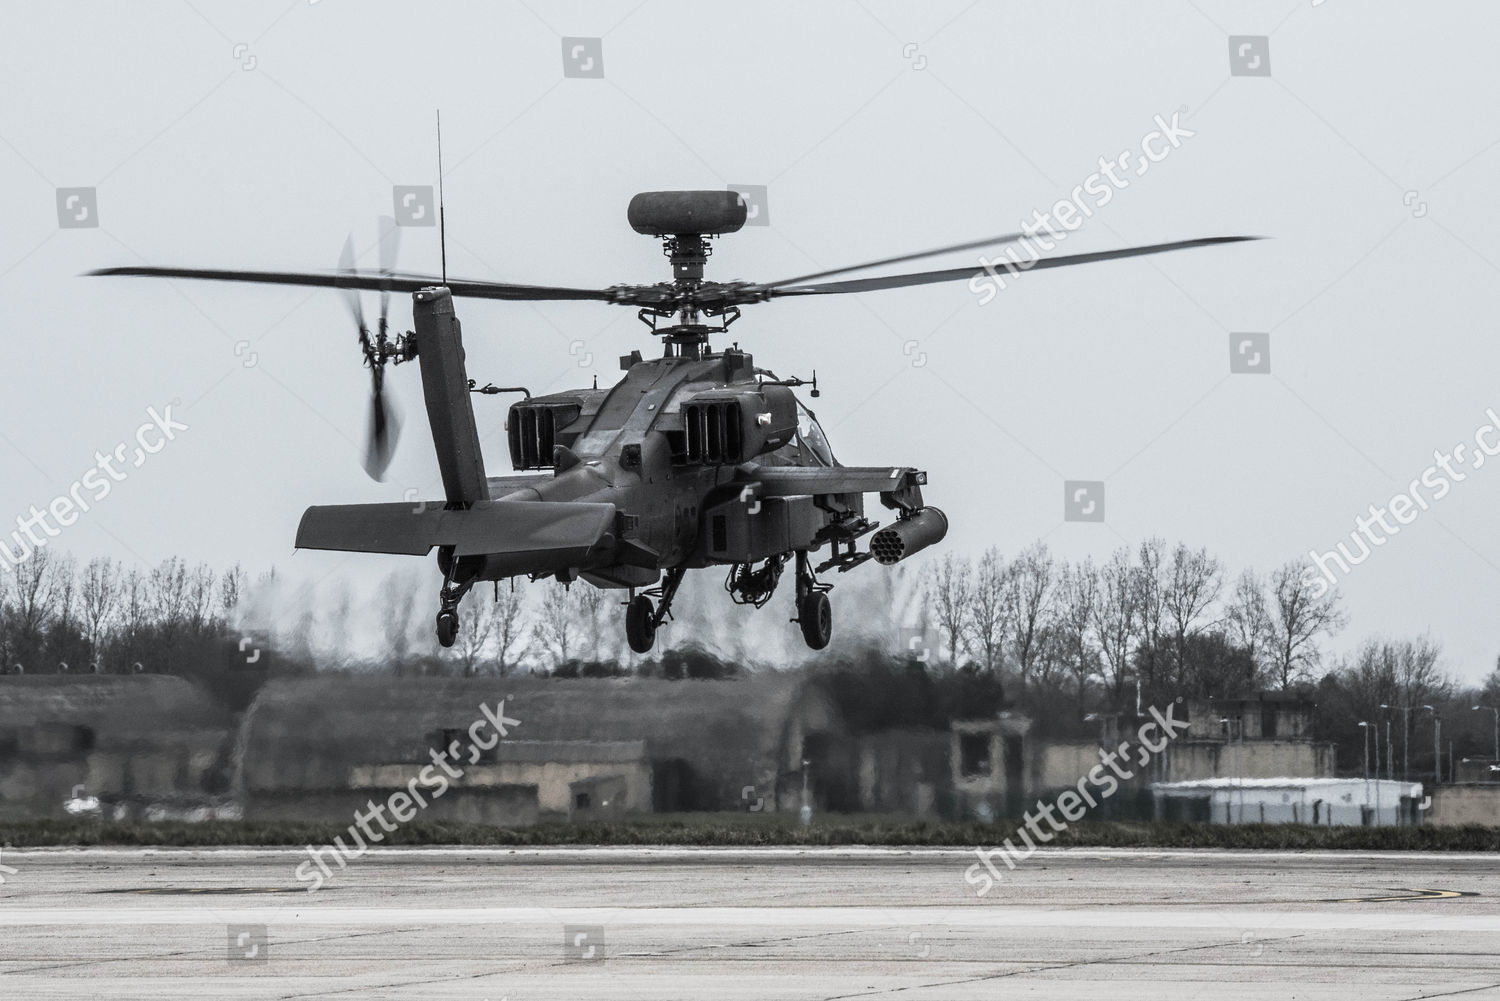 new product 59bd4 a7dfb Apache helicopter Editorial Stock Photo - Stock Image ...